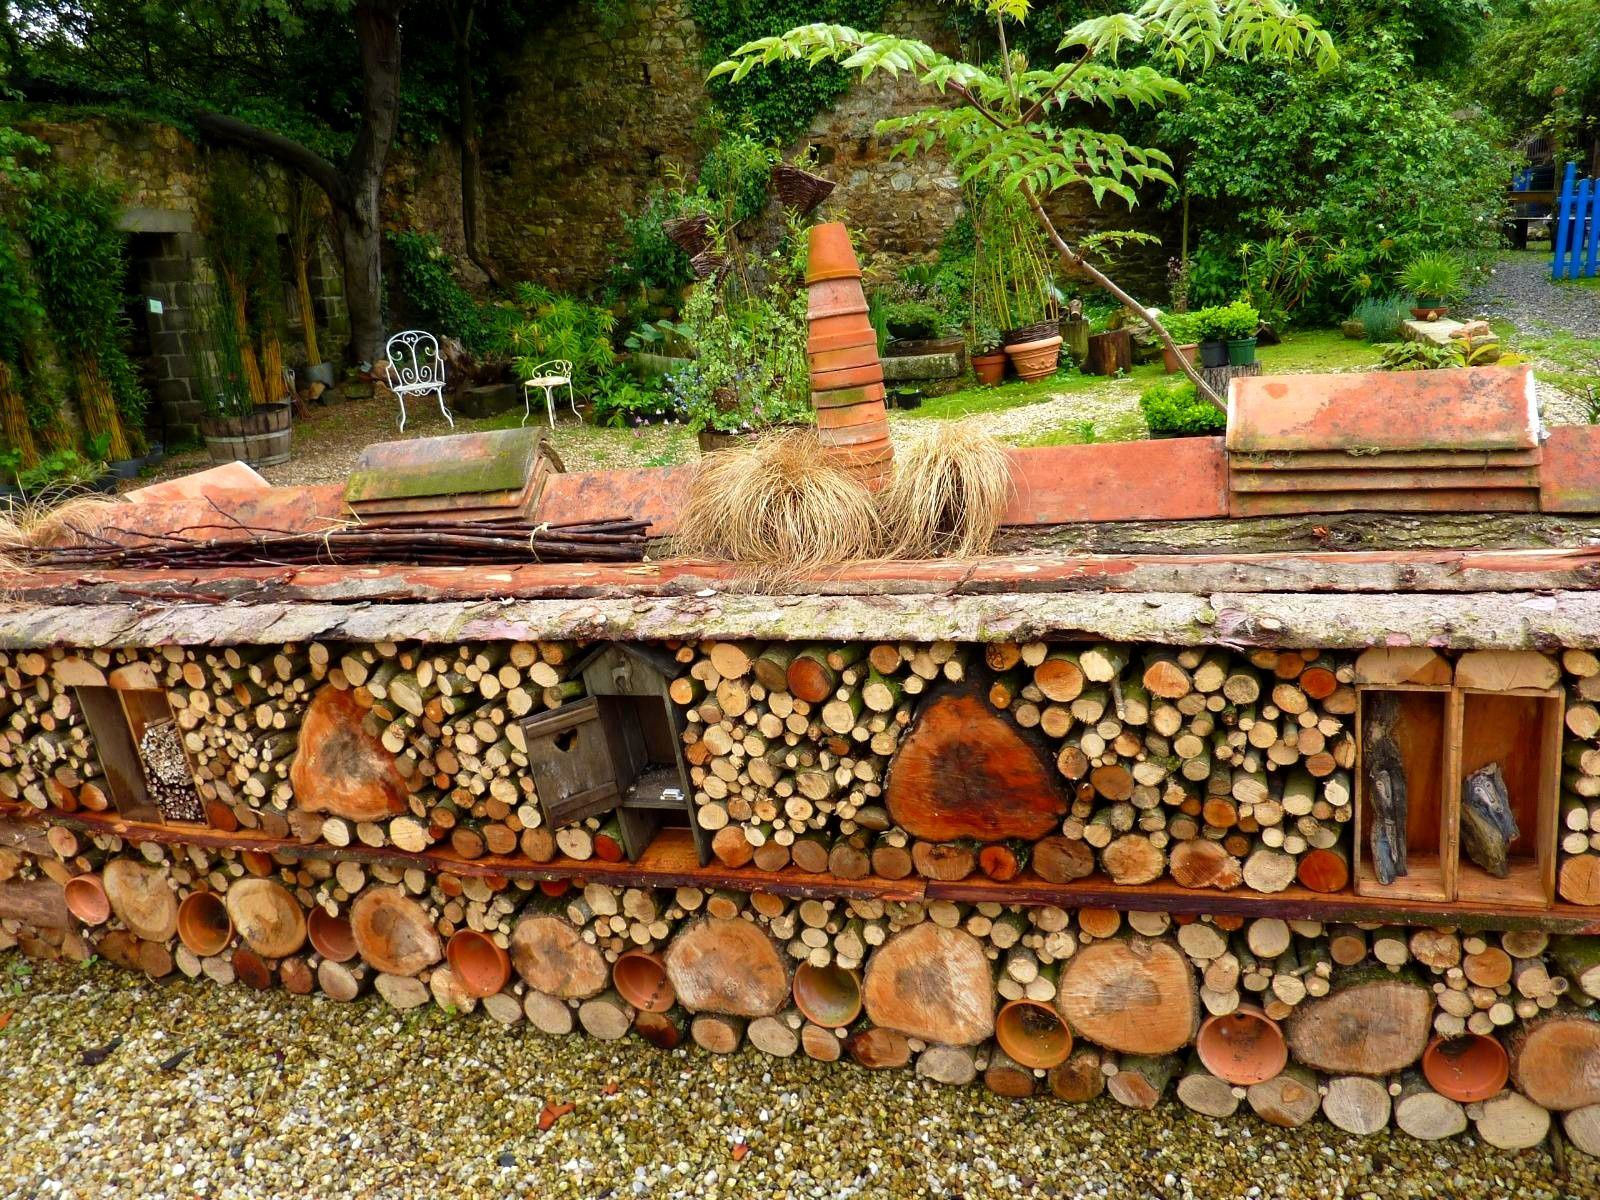 Insect hotel my youngest grand son 39 s would love this for Jardin 63